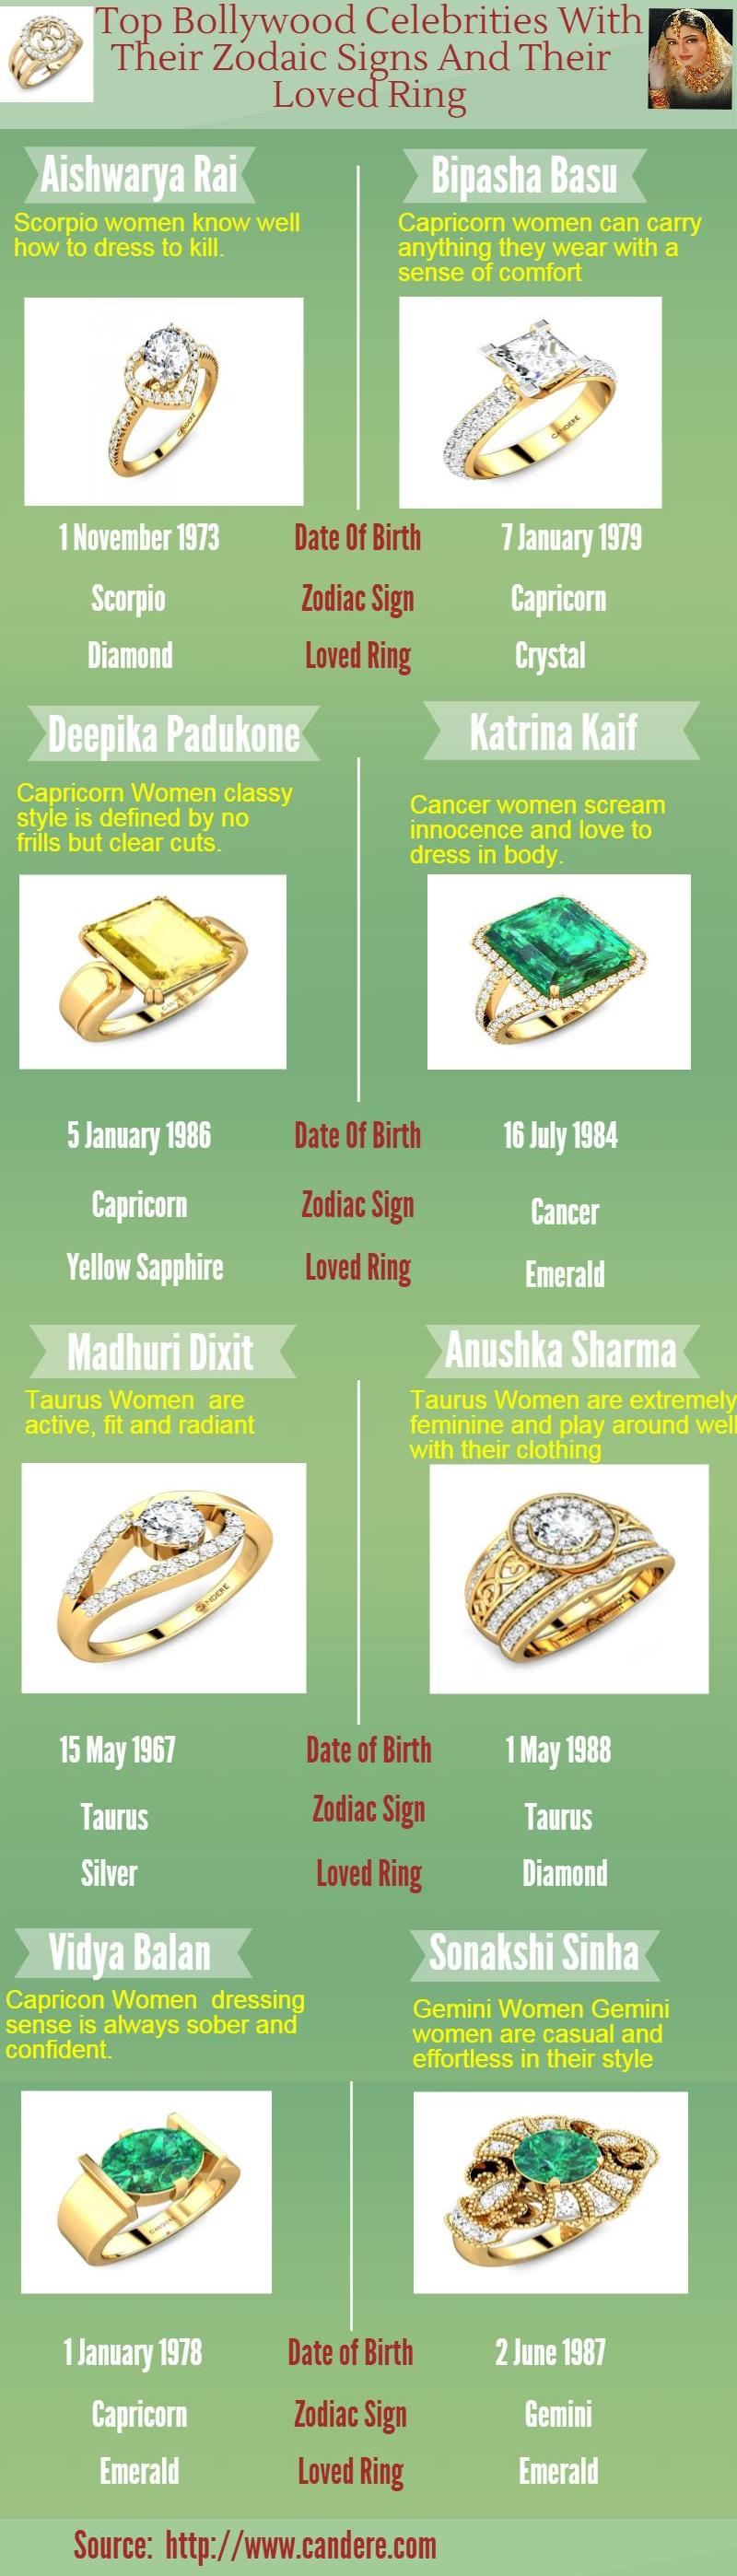 Bollywood Celebrities with Zodaic Signs and Loved Ring